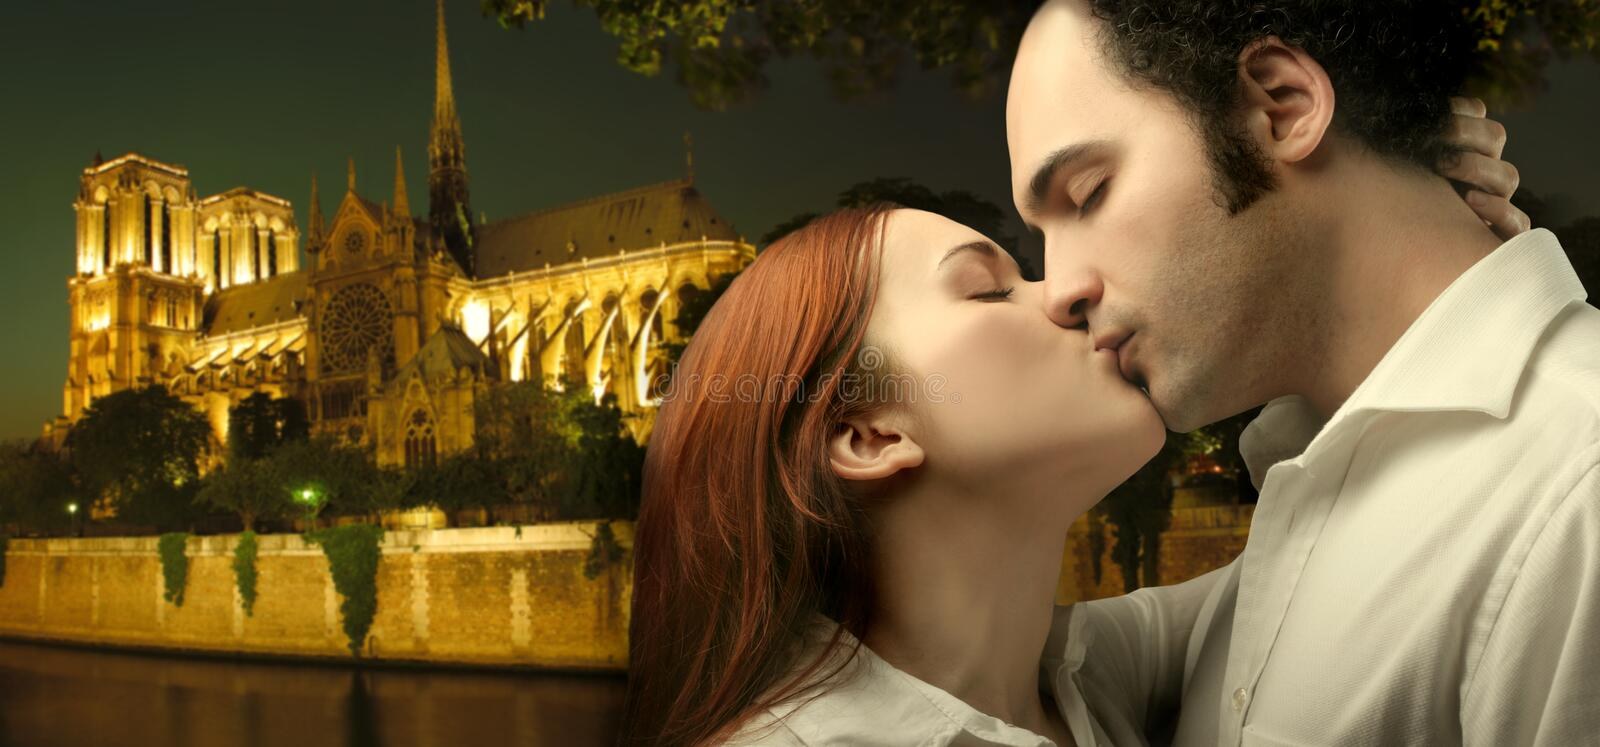 Honeymoon. Sweethearts kissing with notre dame on the background stock photography